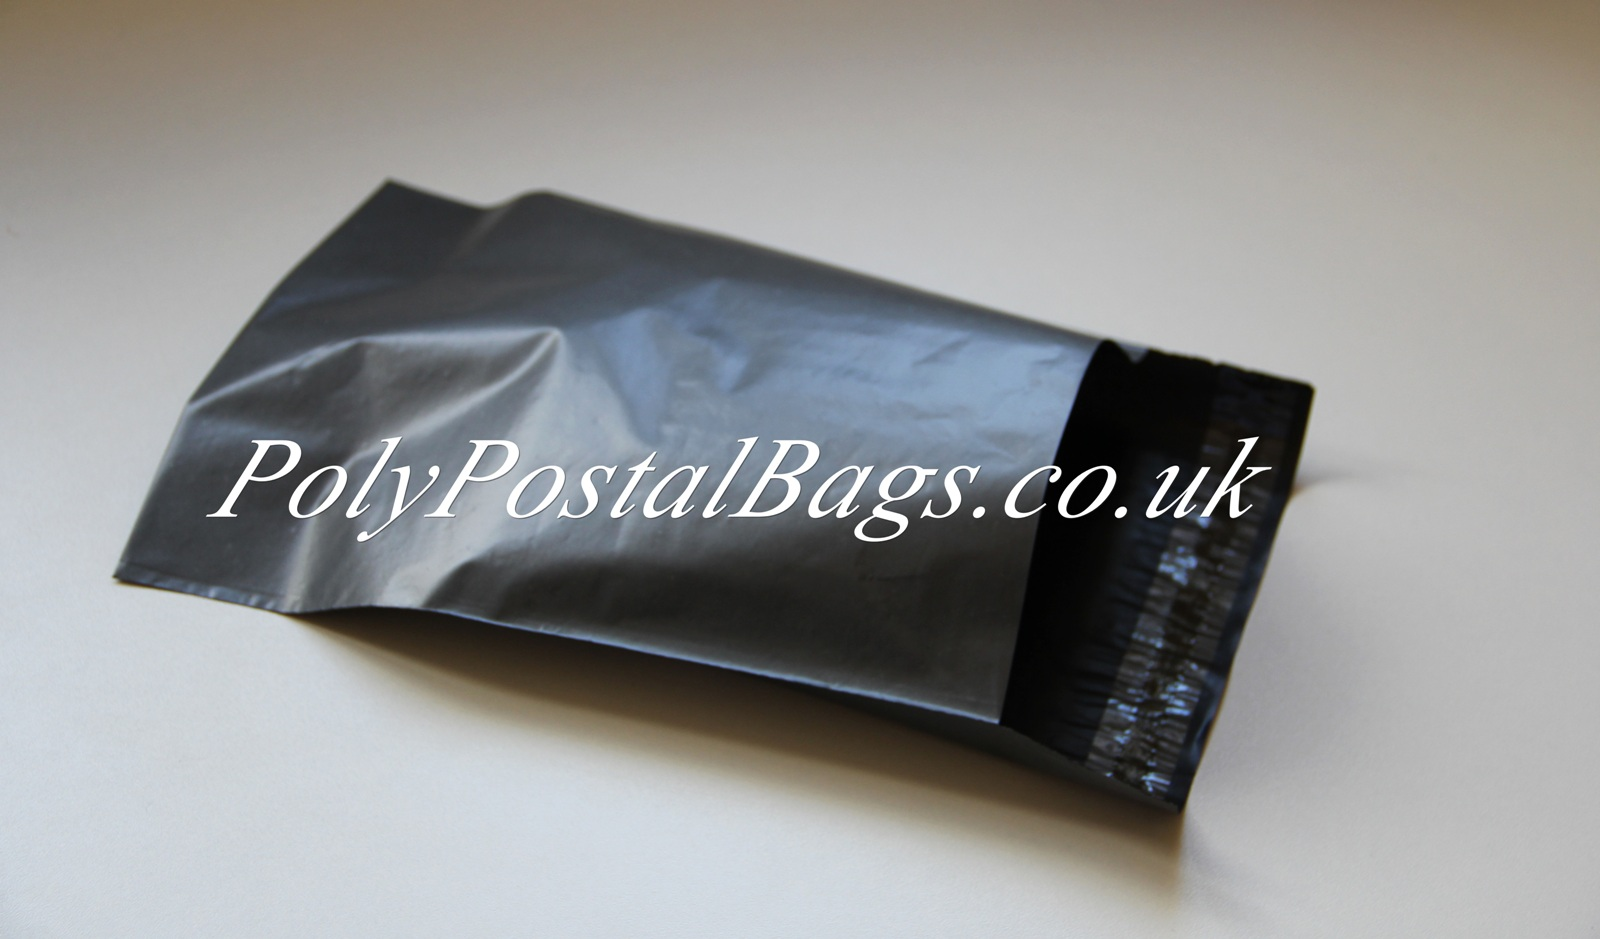 "1000x Grey Mailing Bags 9x12"" - 230x310mm +Lip"